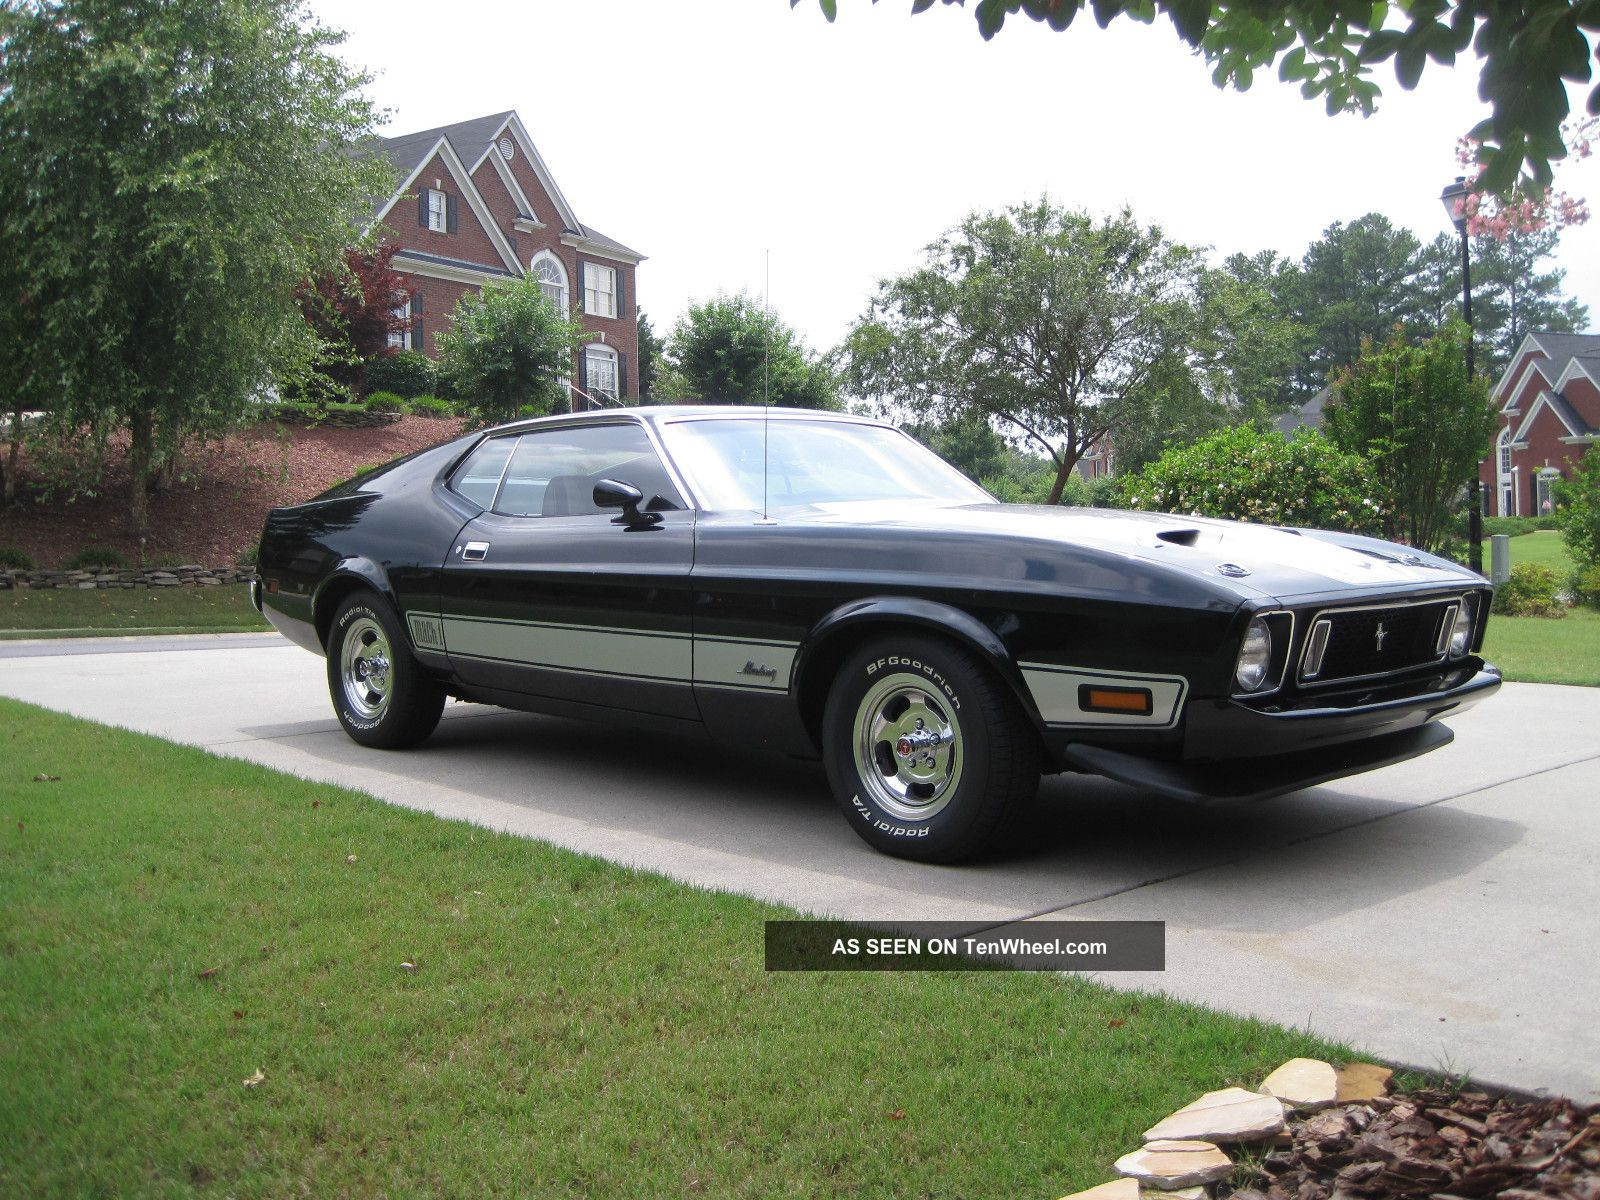 1973 mach 1 mustang garage kept drive. Black Bedroom Furniture Sets. Home Design Ideas